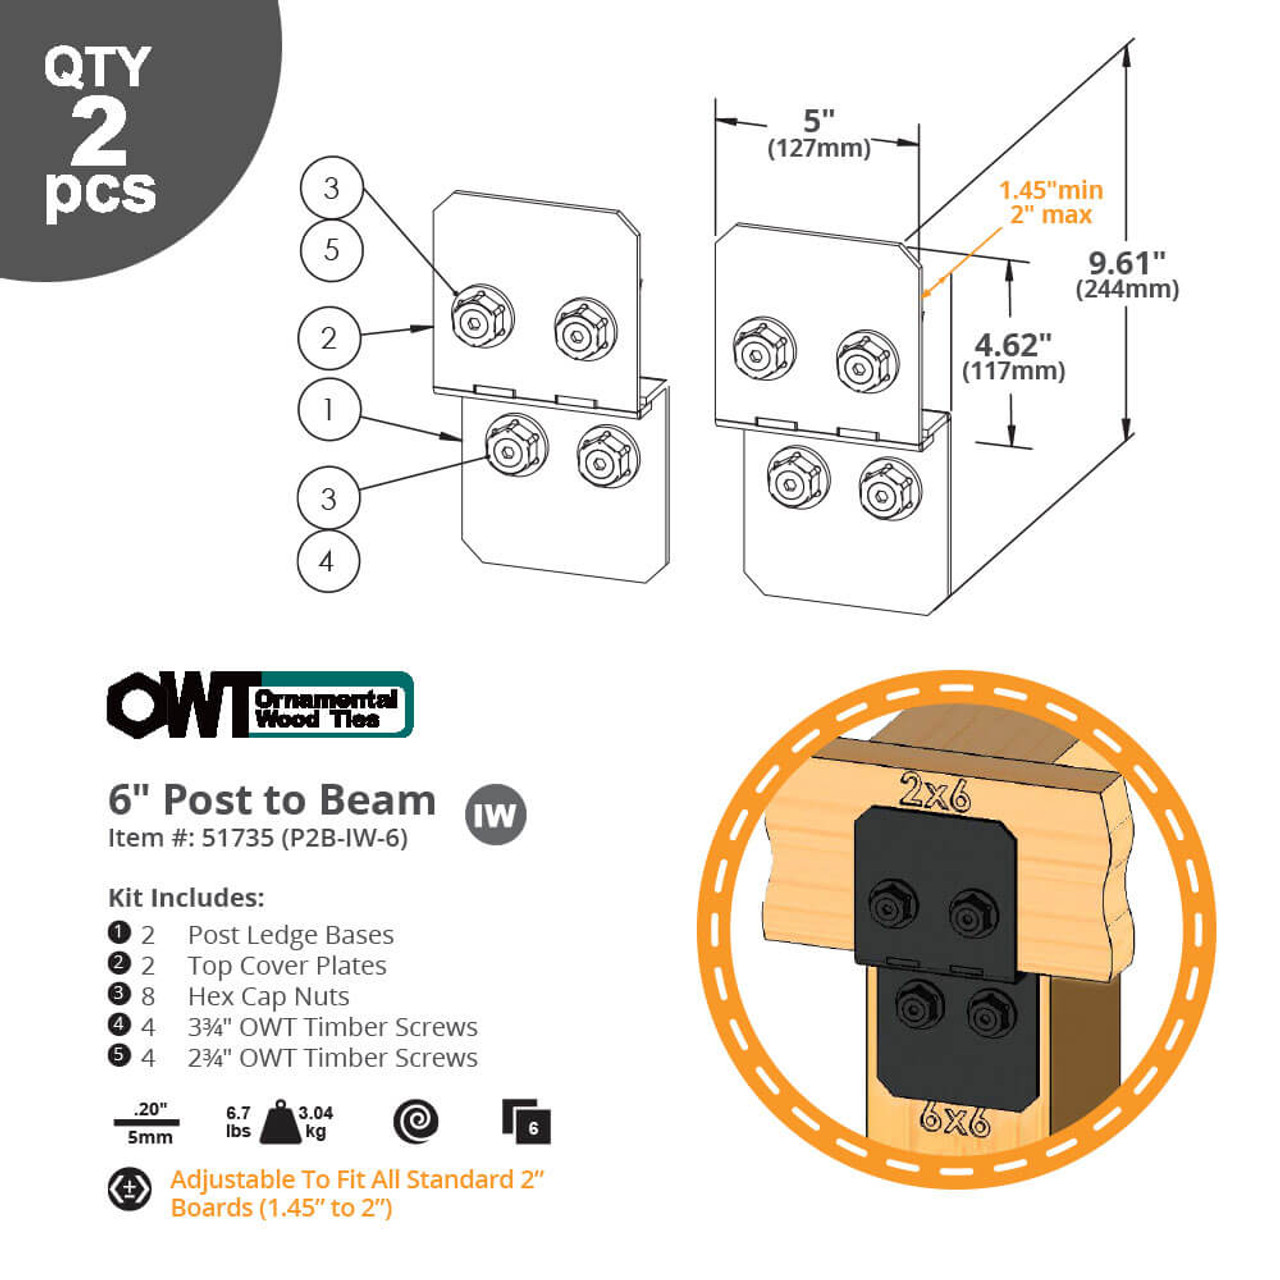 """6"""" Post to Beam Connectors from OZCO Ornamental Wood Ties (OWT) Dimension Drawing"""